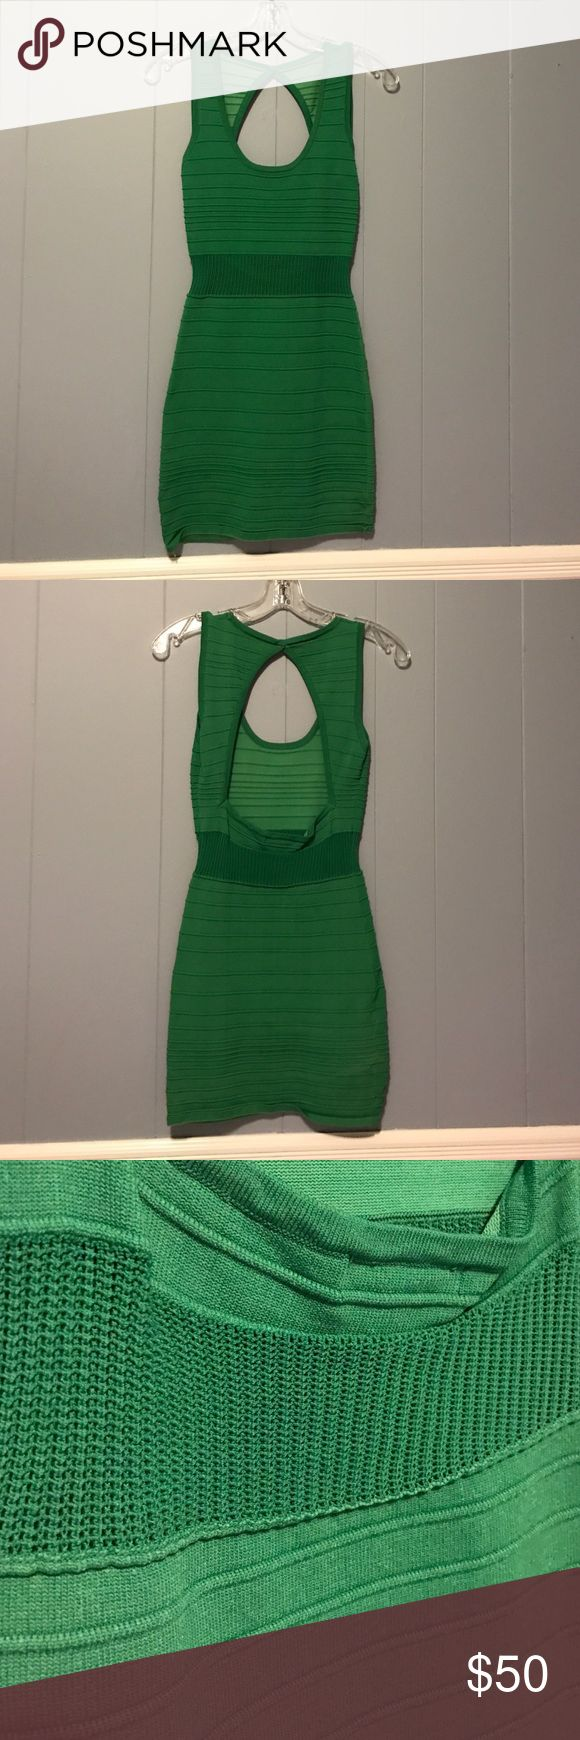 Bandage Dress 65% rayon, 35% nylon. Green bandage dress with open back. Great for holiday parties! WOW couture Dresses Mini